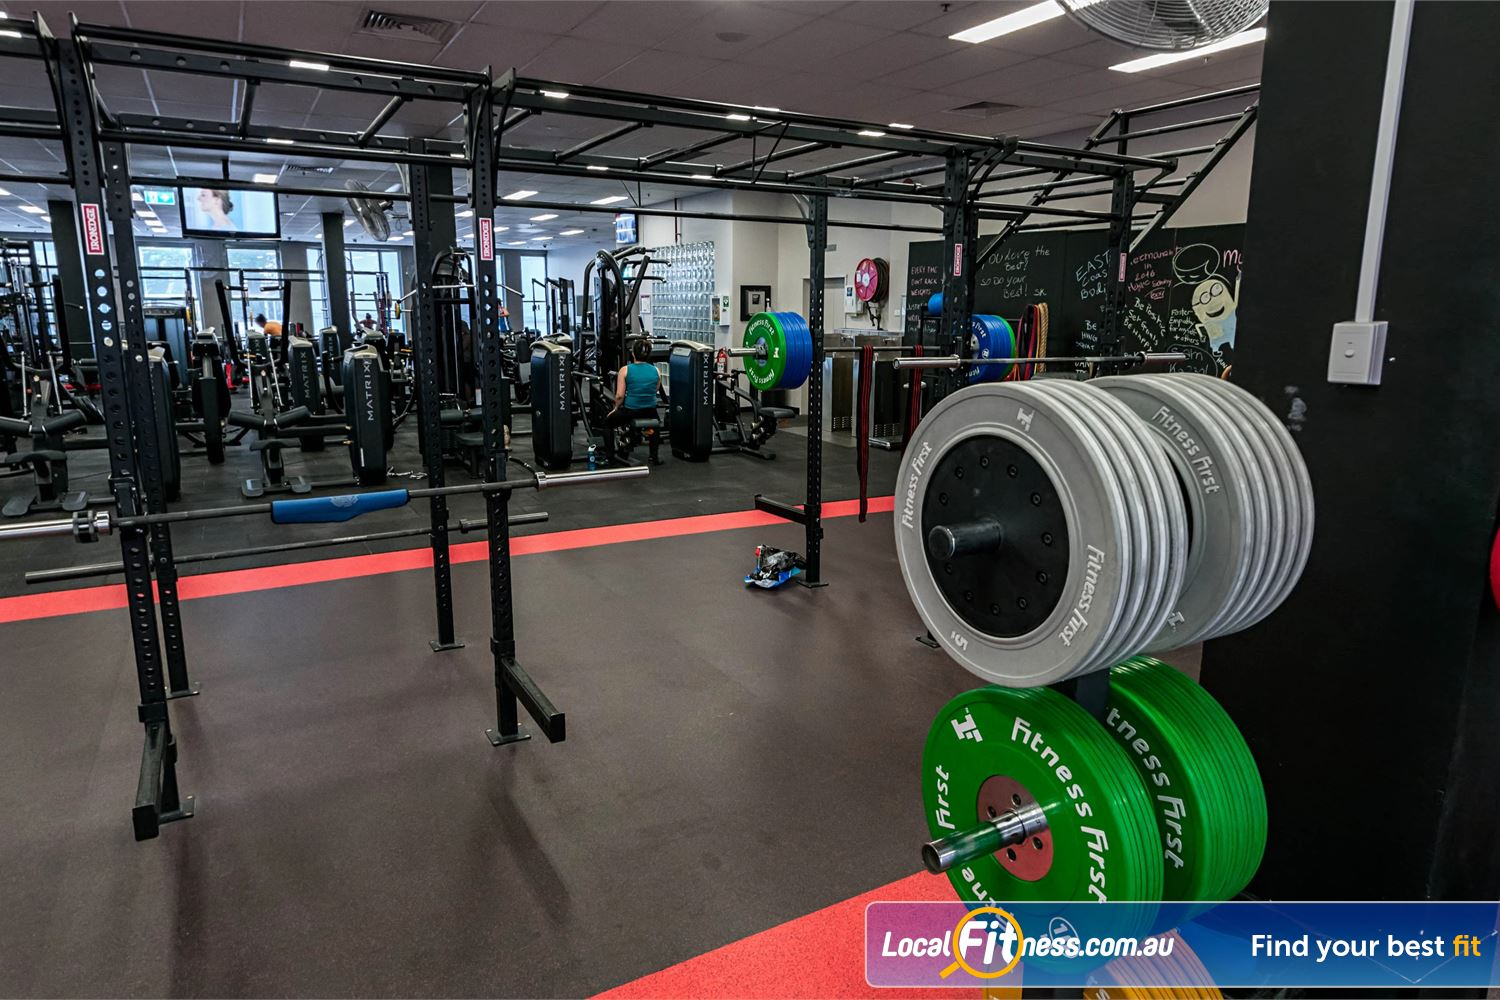 Fitness First Platinum Spring St Near Queens Park The dedicated Bondi HIIT gym space is fully equipped for functional training.